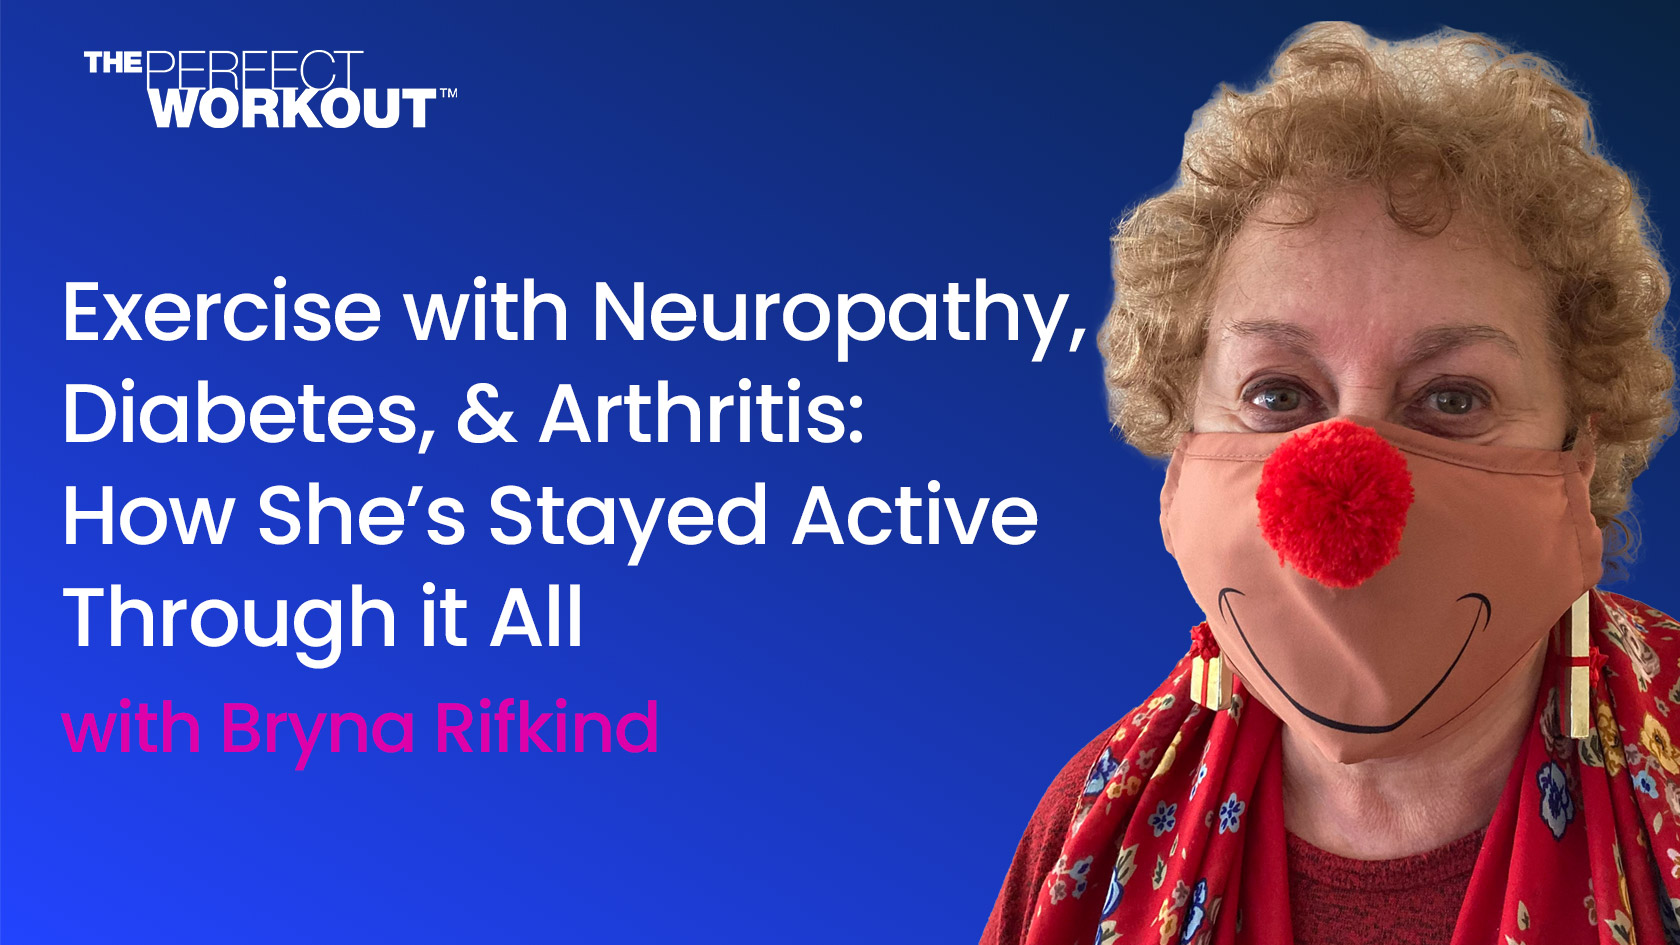 Exercise with Neuropathy, Diabetes, & Arthritis: How She's Stayed Active Through it All